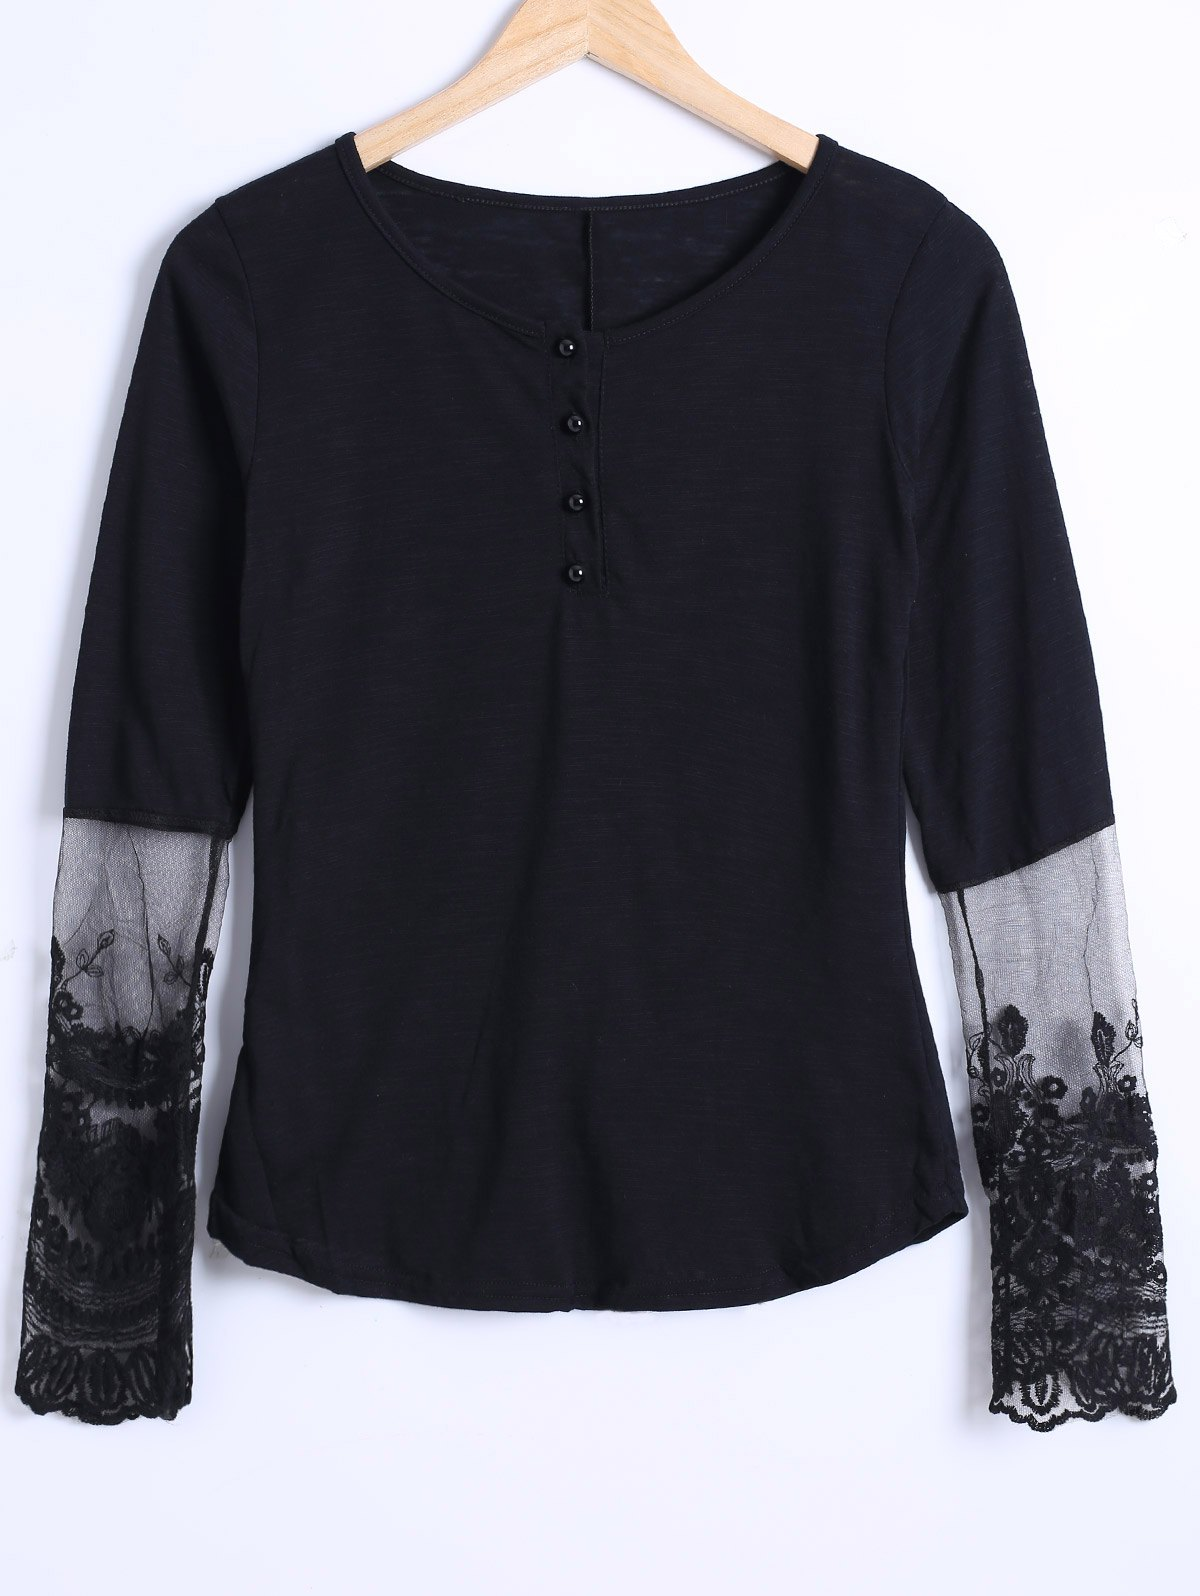 See Through Lace Trim Blouse - BLACK 4XL